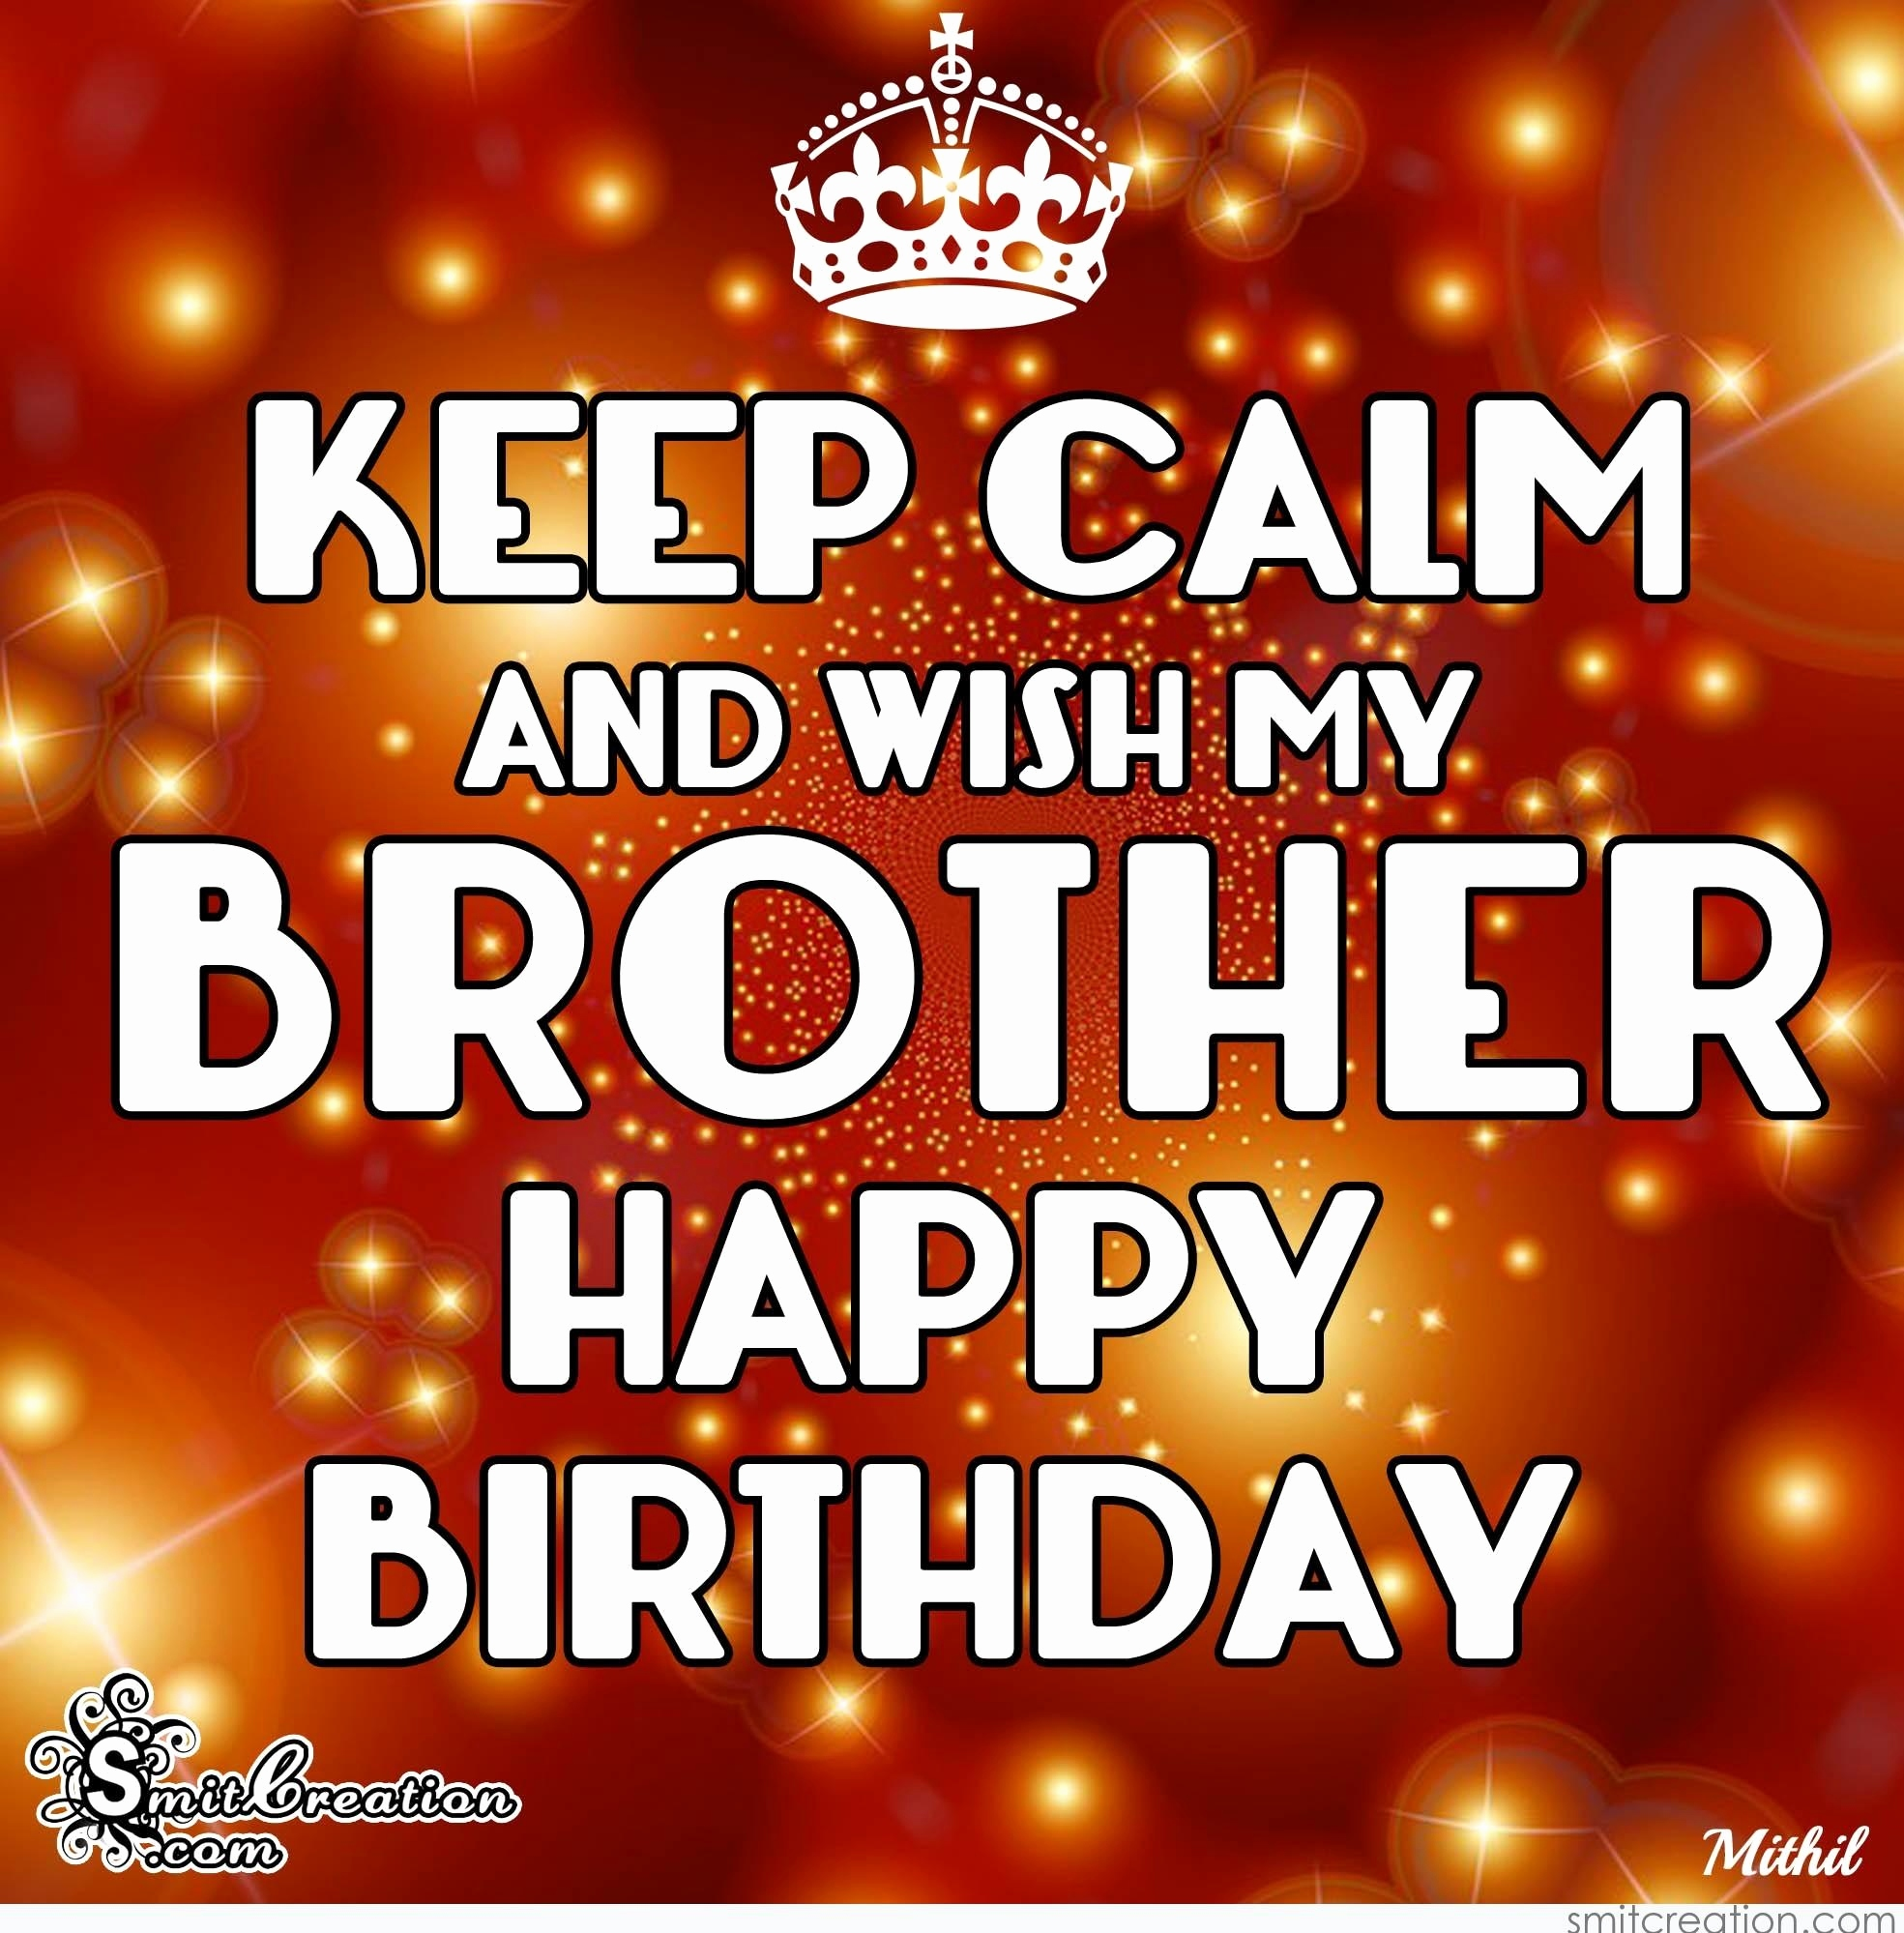 a birthday message to my brother ; happy-birthday-wishes-brother-elegant-keep-calm-and-wish-my-brother-happy-birthday-smitcreation-of-happy-birthday-wishes-brother